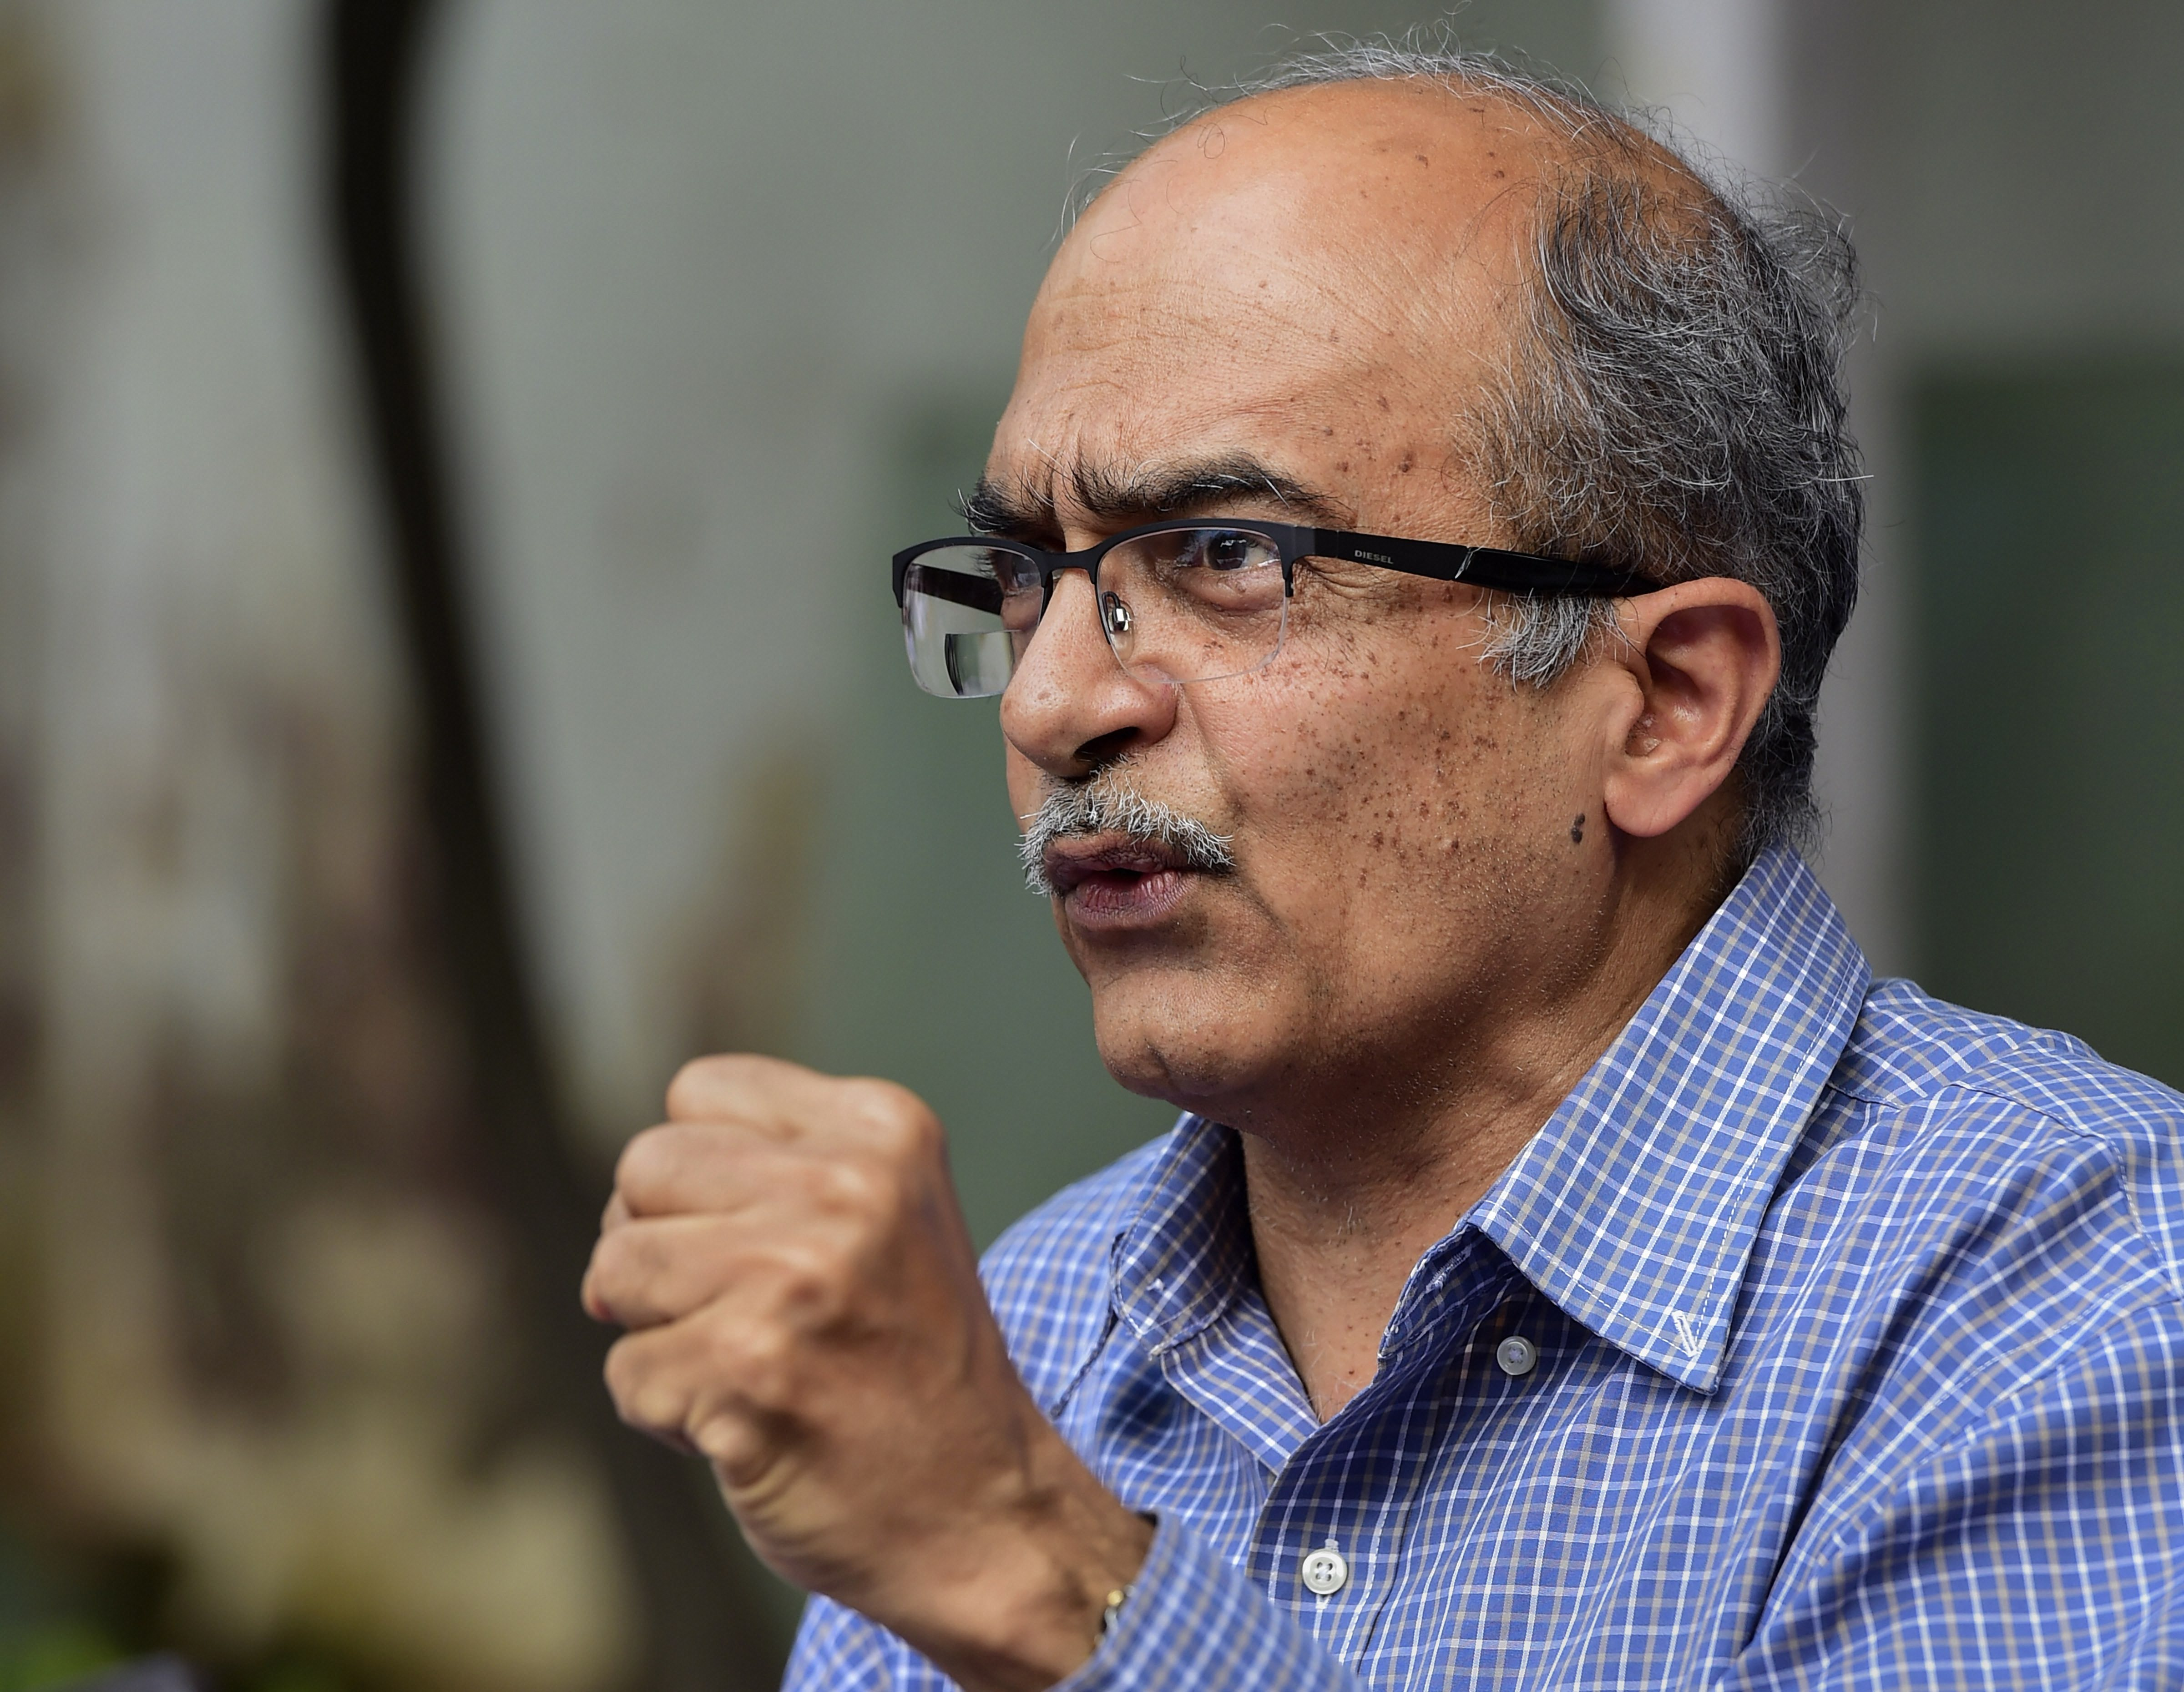 New Delhi: Activist-lawyer Prashant Bhushan addresses a press conference, after Supreme Court imposed a token fine of one rupee as punishment in a contempt case against him, in New Delhi, Monday, Aug. 31, 2020. (PTI Photo/Kamal Kishore)(PTI31-08-2020_000115B)